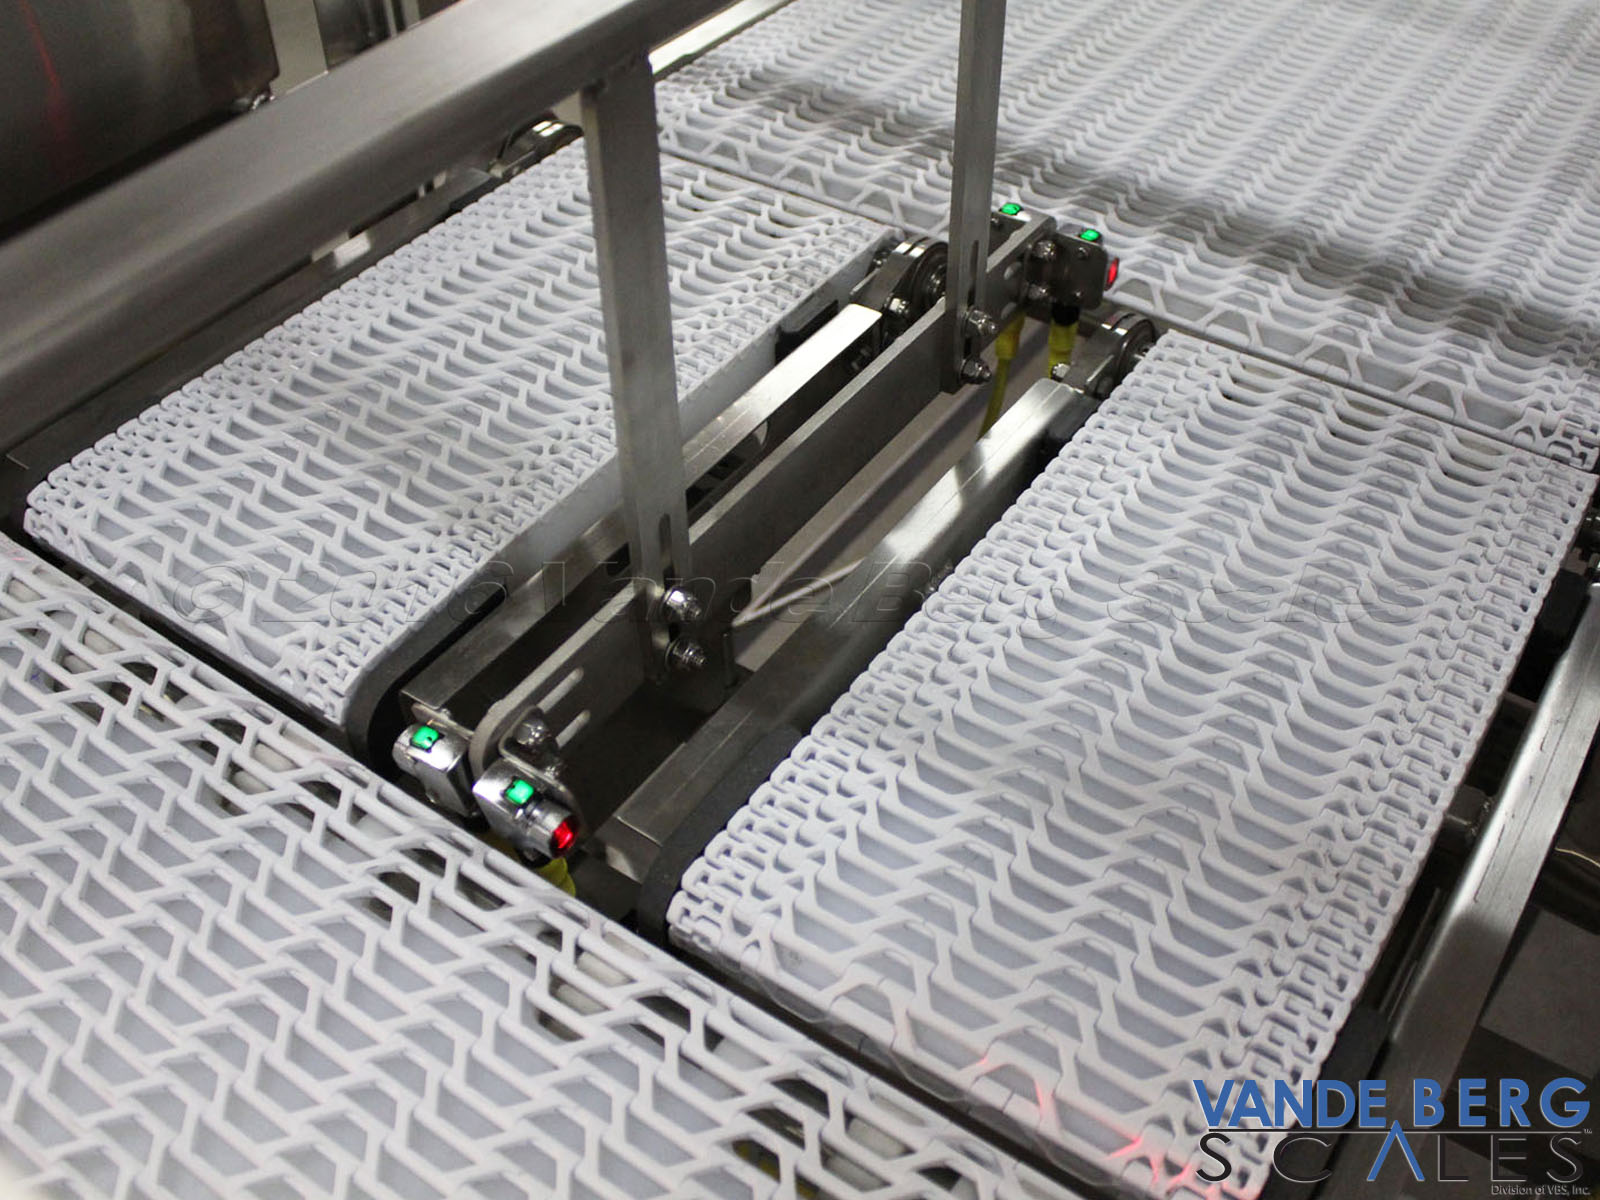 Two conveyor scales weigh product from each lane and send information to a database.